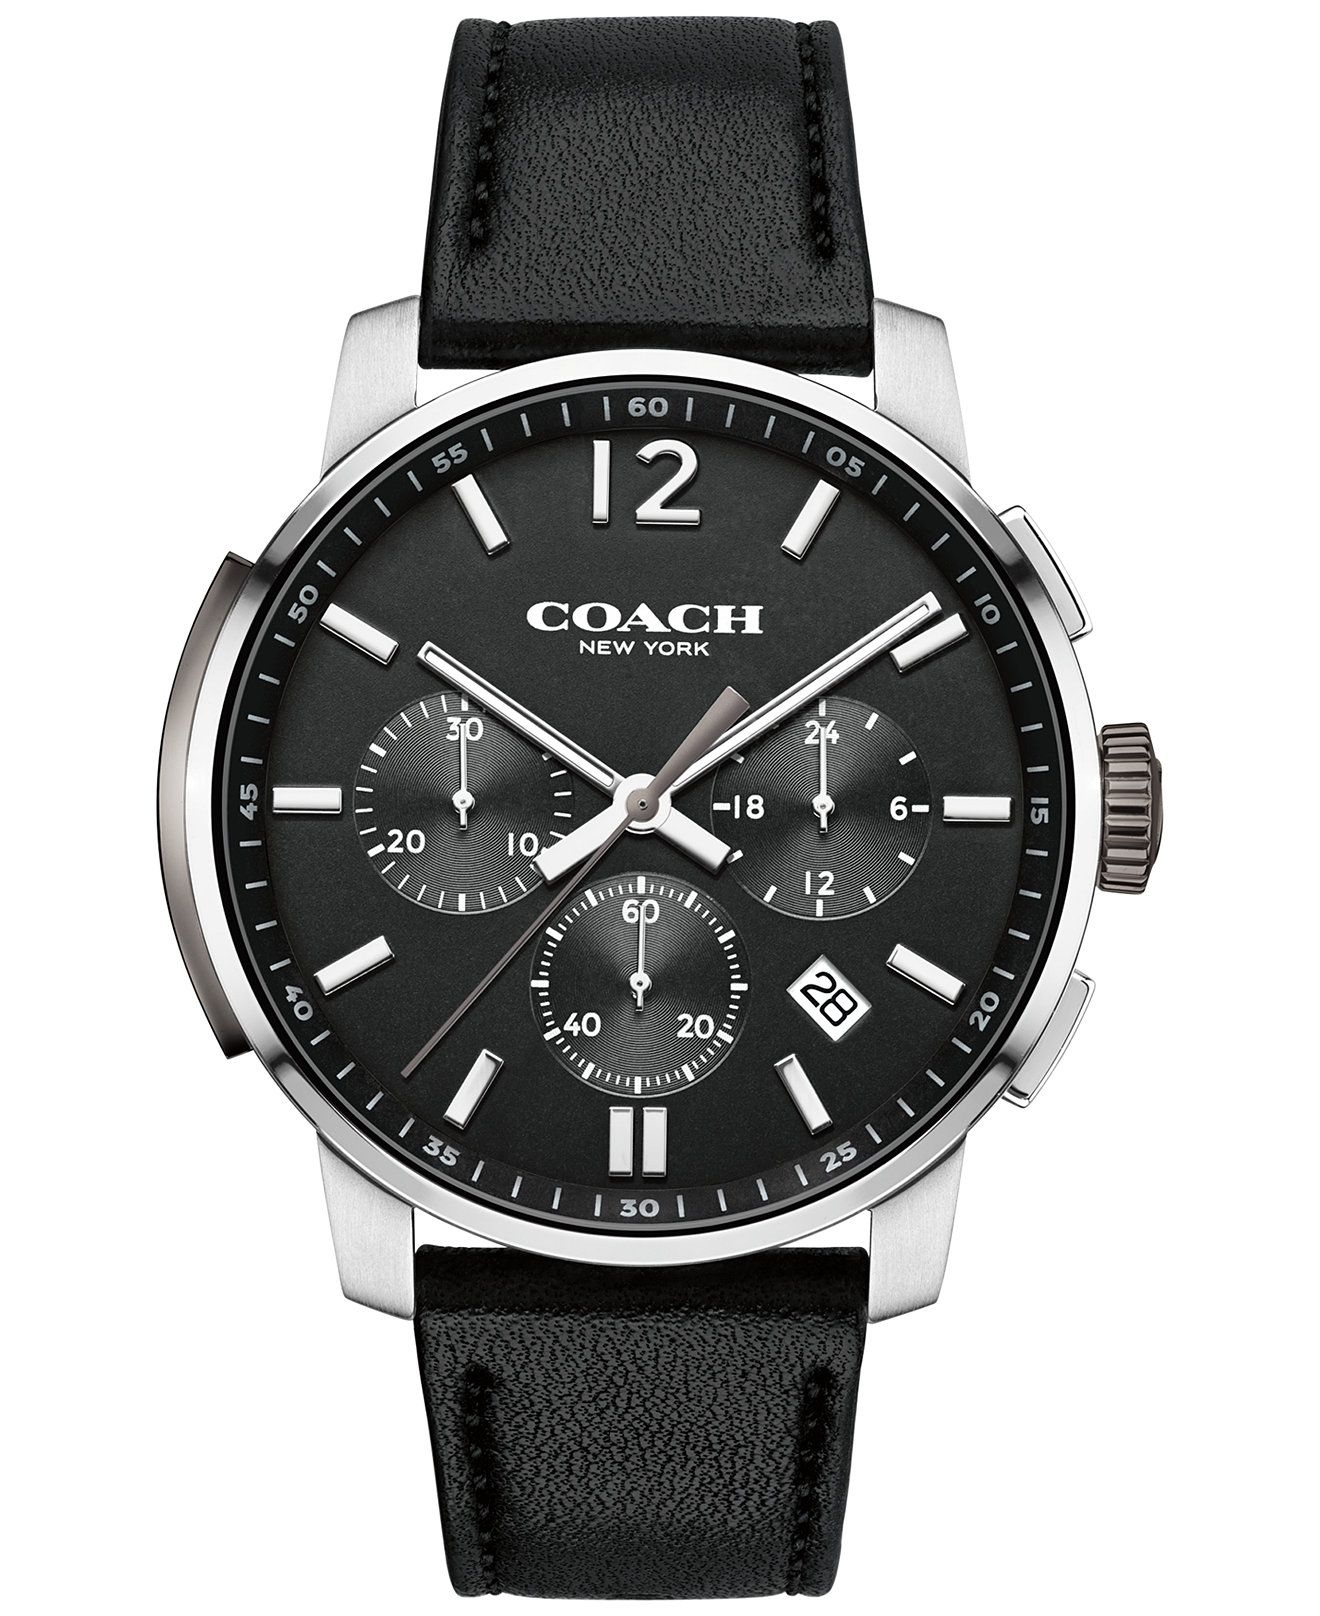 coach men s chronograph bleecker black leather strap watch 42mm coach men s chronograph bleecker black leather strap watch 42mm 14602014 only at macy s men s